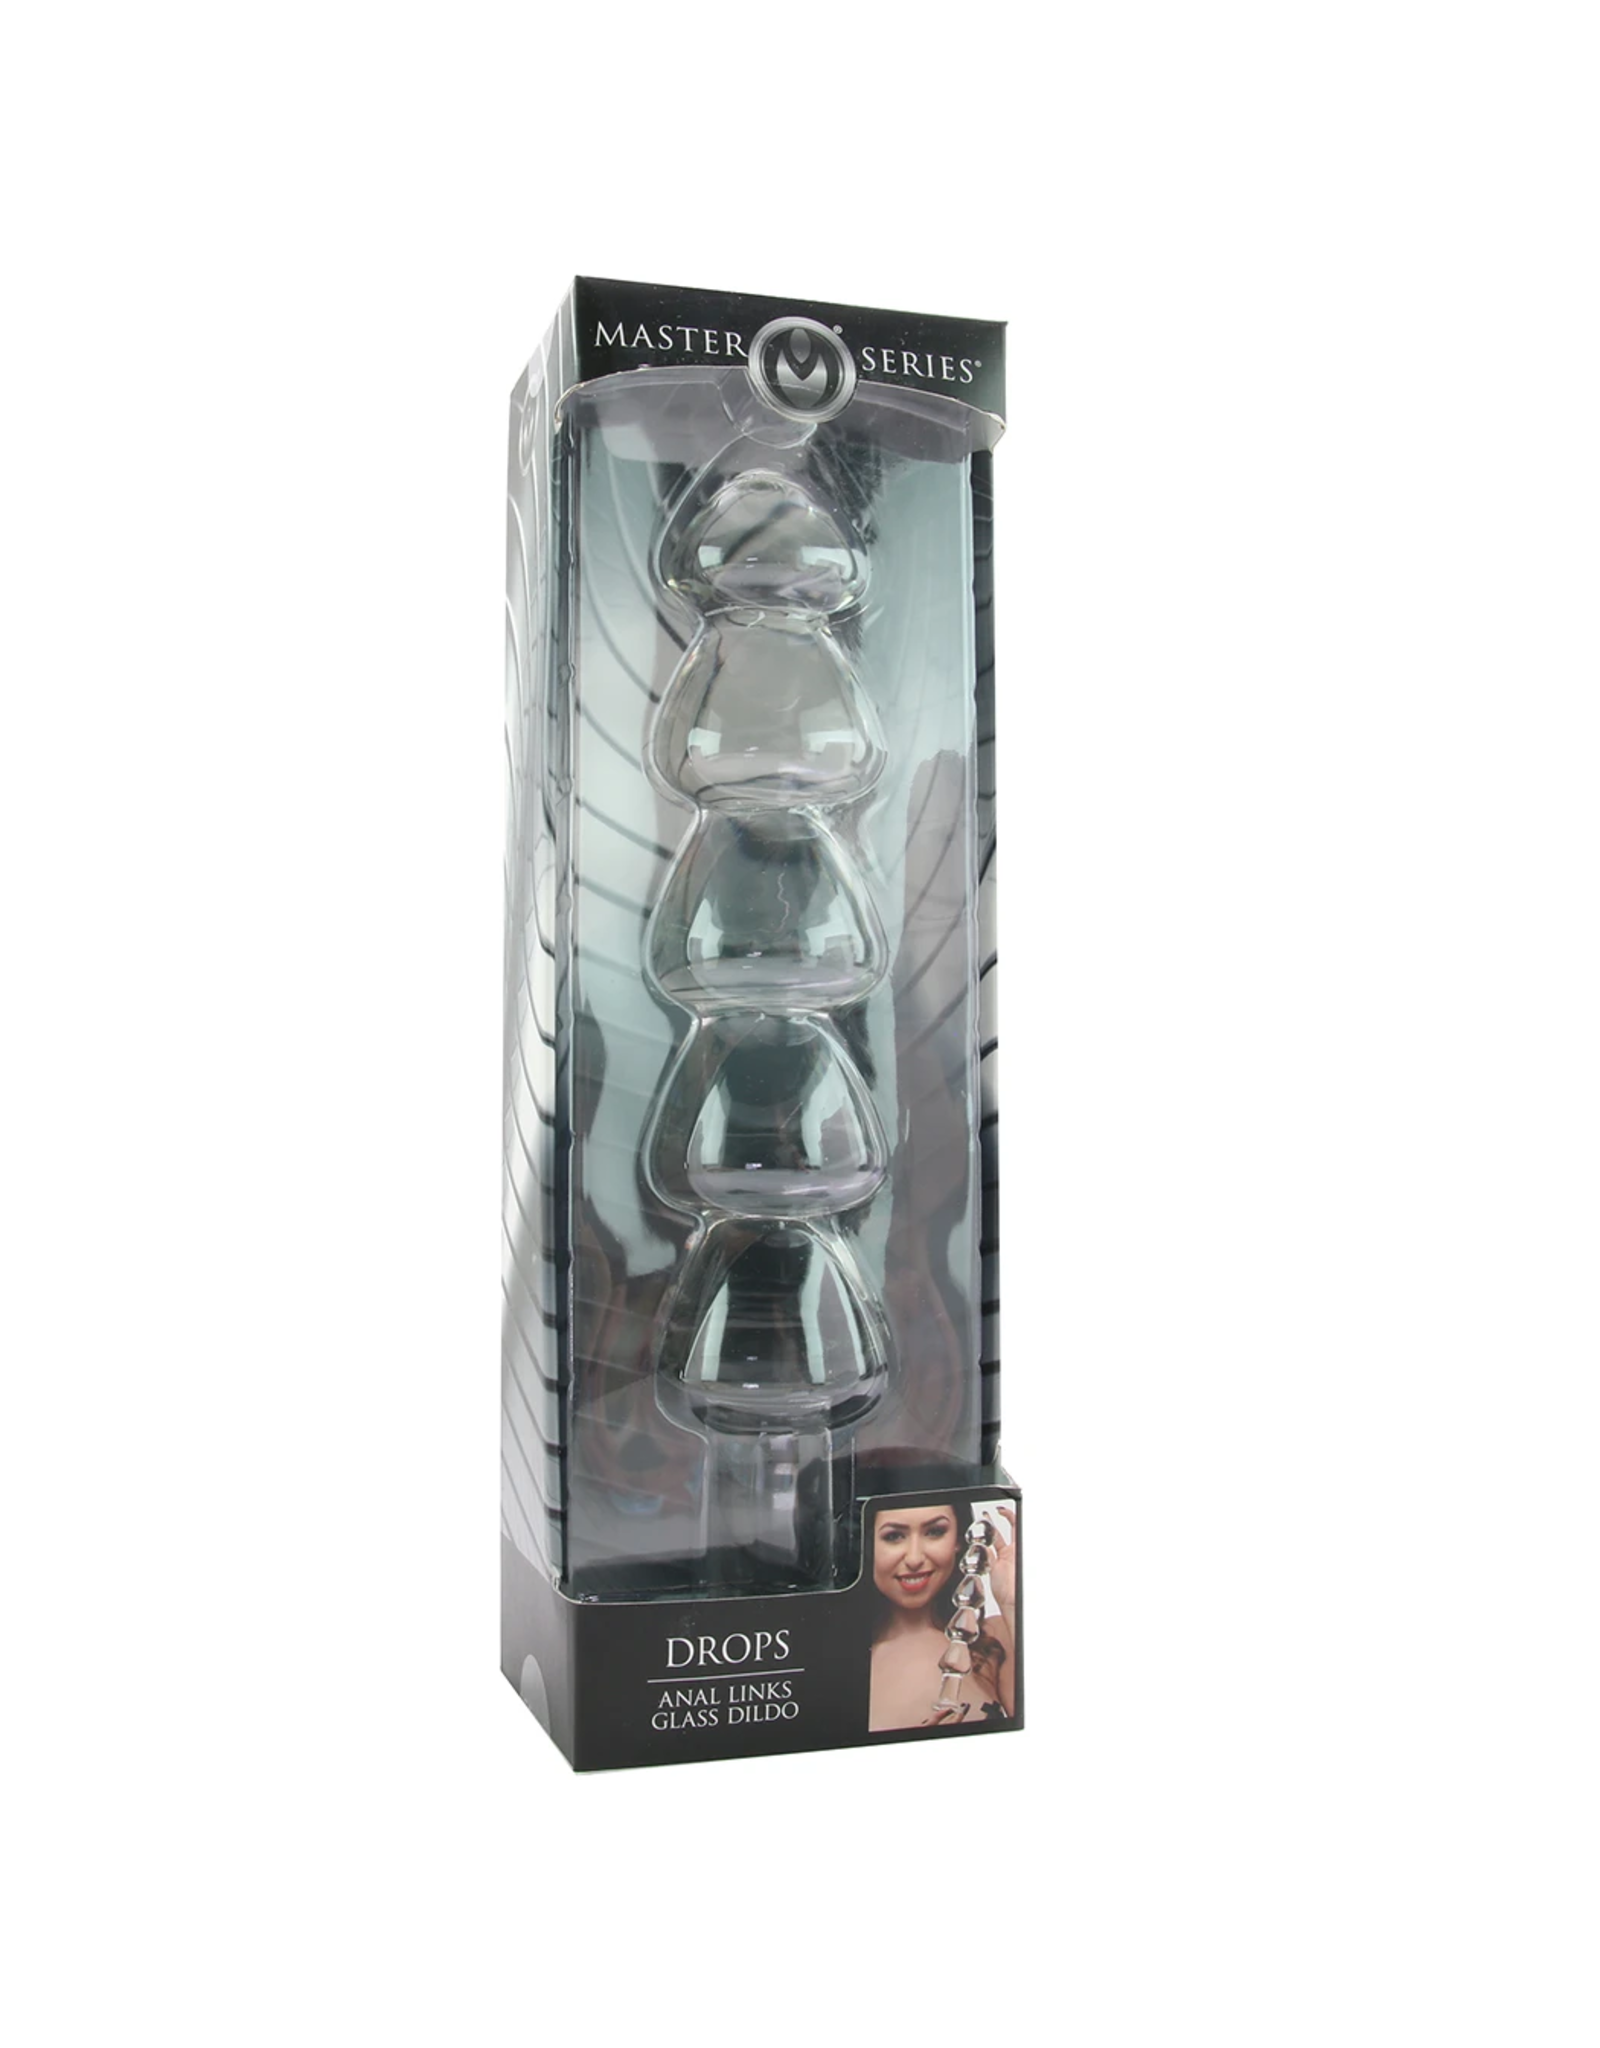 MASTER SERIES - DROPS ANAL LINKS - GLASS